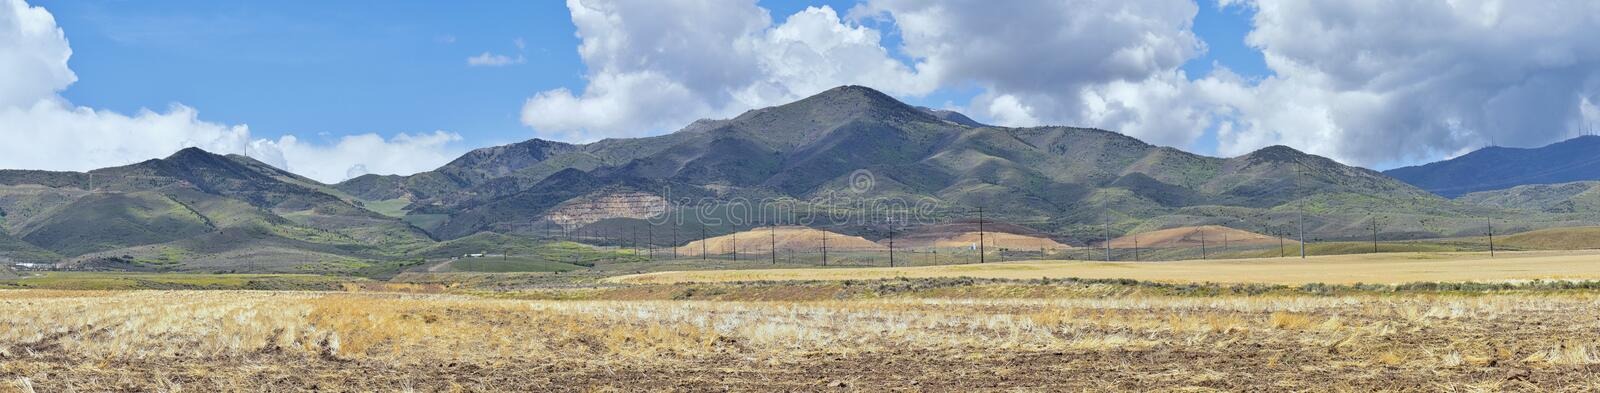 Panorama of Oquirrh Mountain range which includes The Bingham Canyon Mine or Kennecott Copper Mine, rumored the largest open pit c. Opper mine in the world in royalty free stock photos